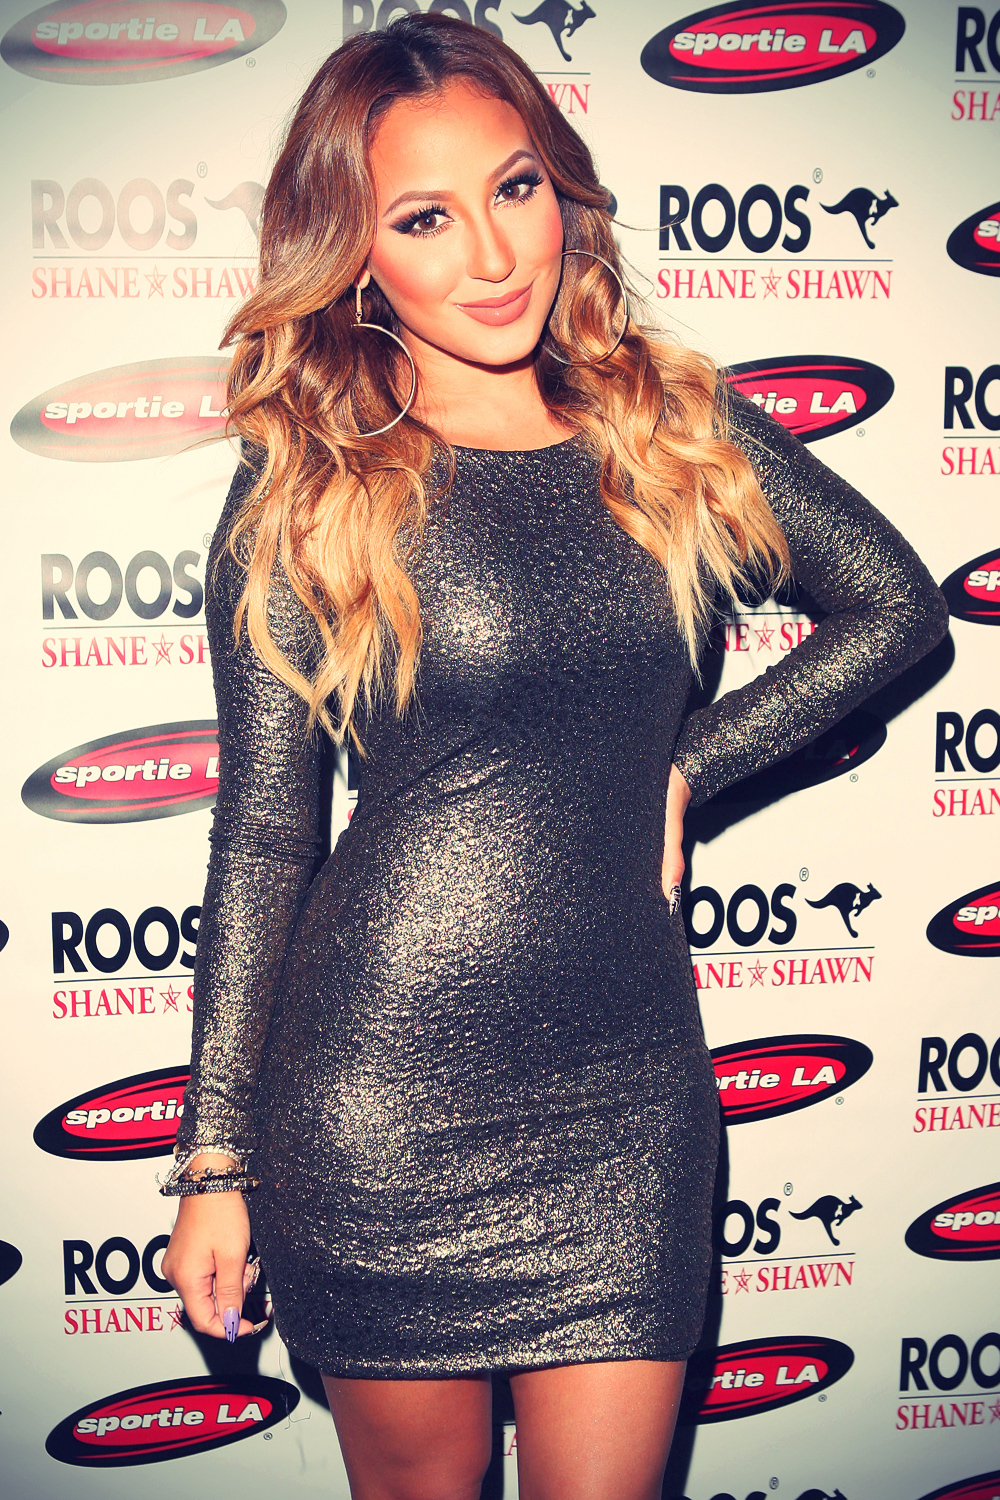 Adrienne Bailon attends the ROOS Shane & Shawn Fashion's Night Out